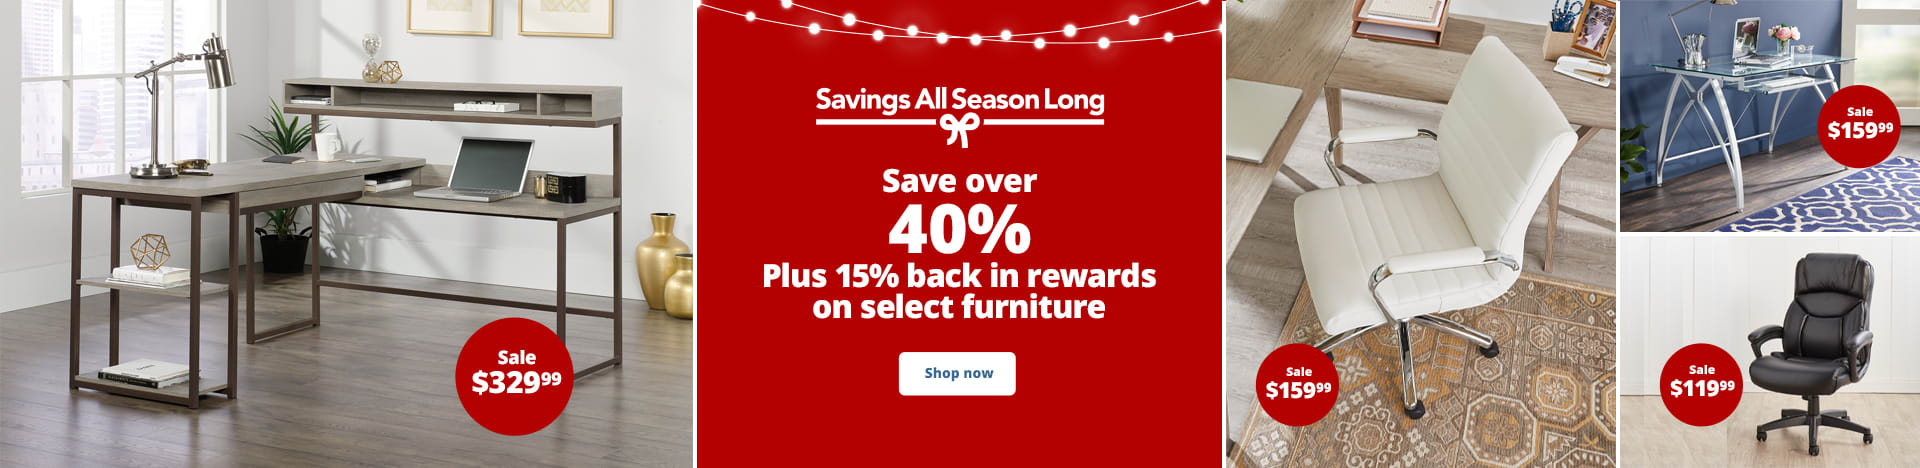 Save over 40% on select furniture